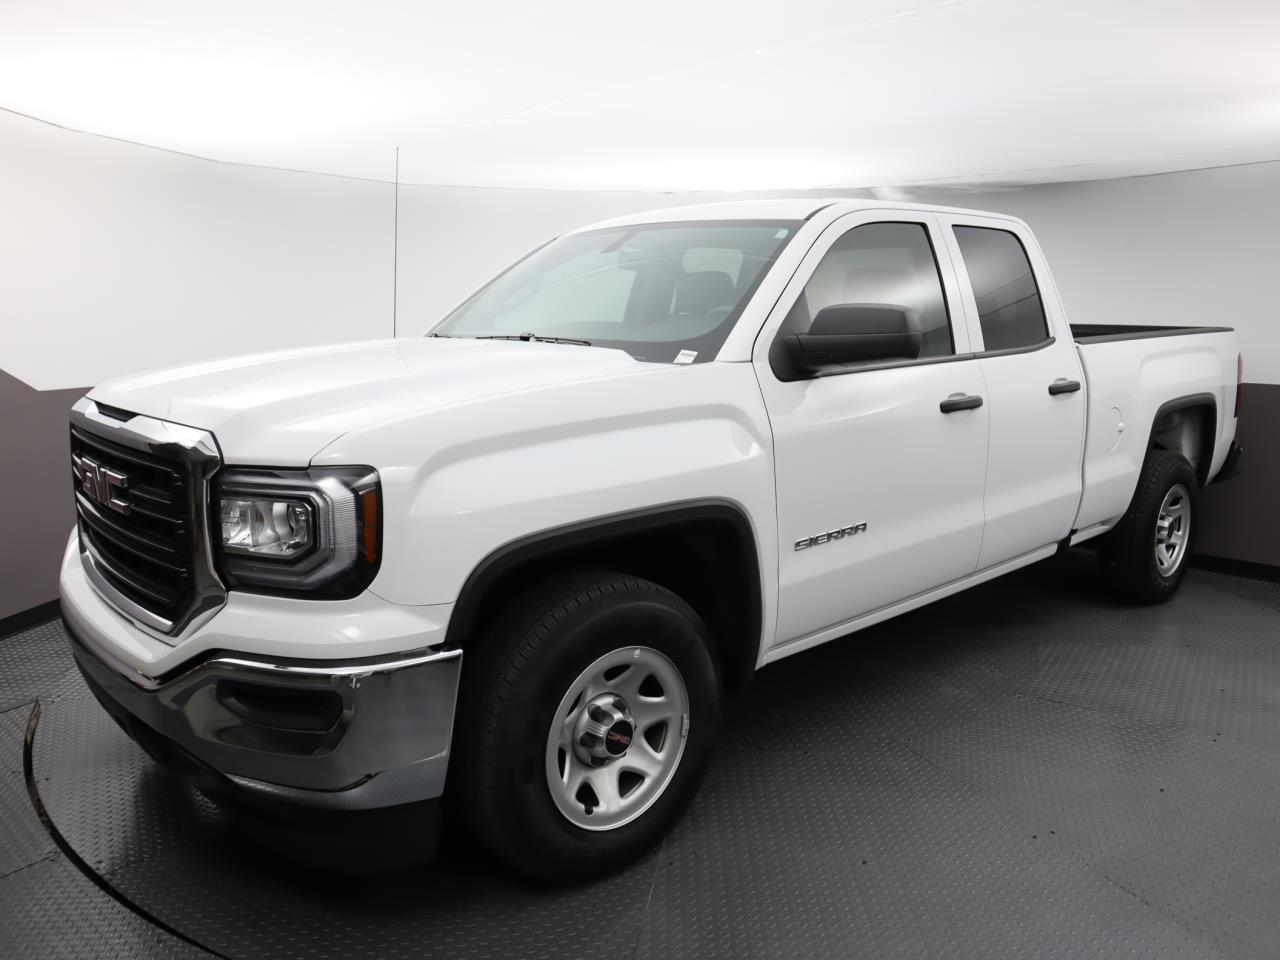 Used GMC SIERRA-1500-LIMITED 2019 WEST PALM